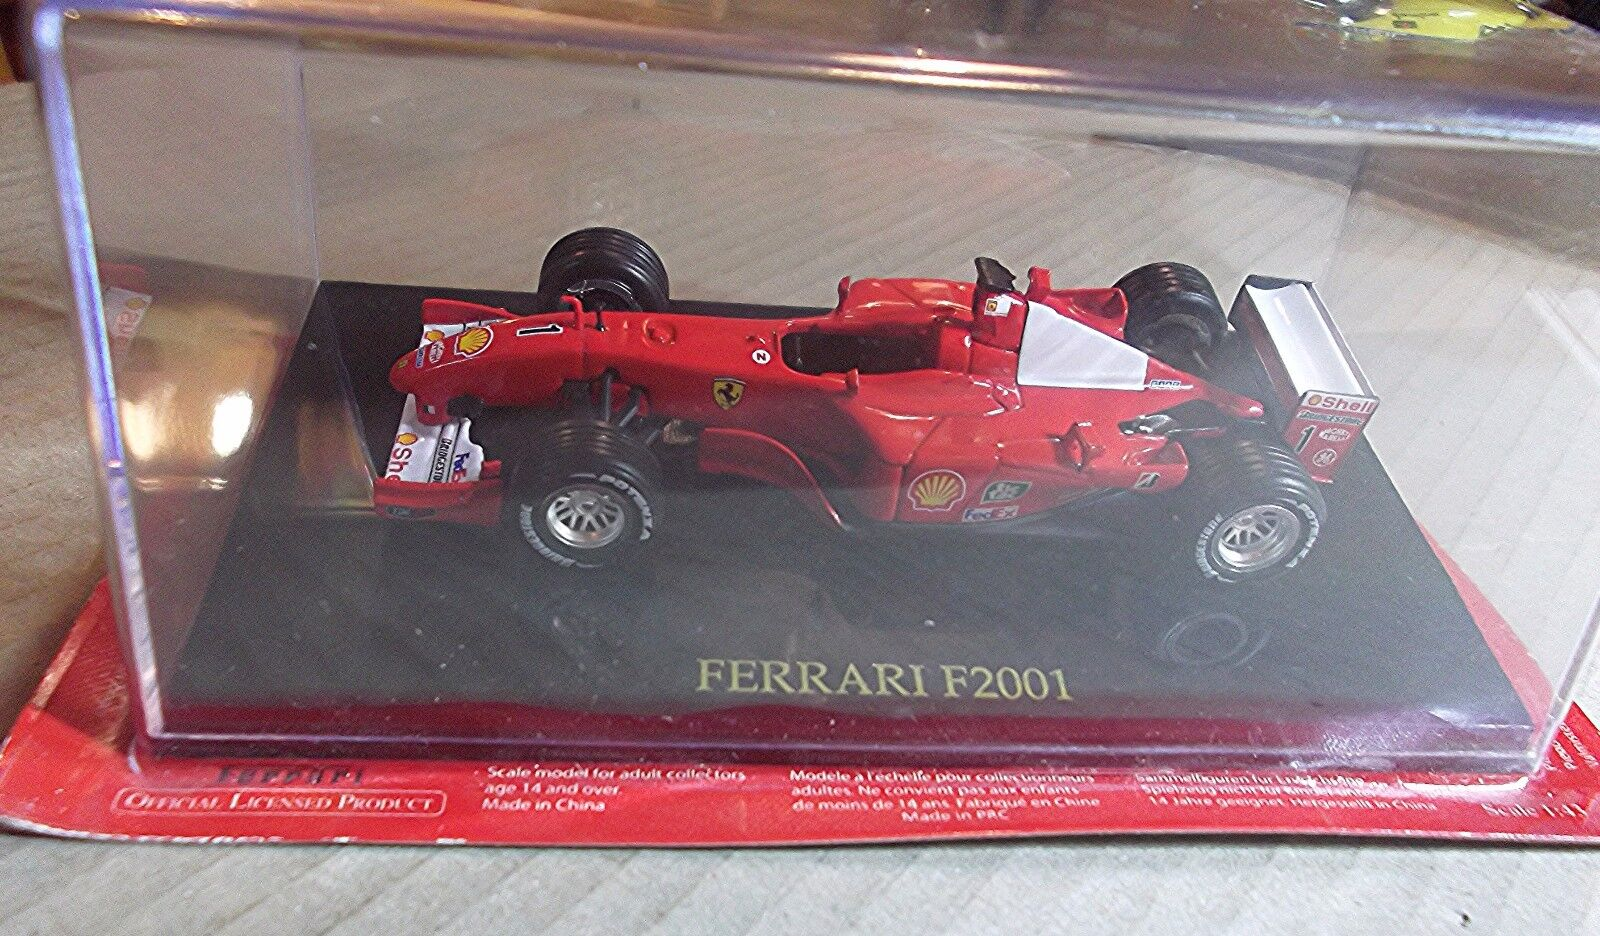 128164080  FERRARI F2001 M. SCHUMACHER  1 43 SCALE  OFFICIAL PRODUCT  RED No 1